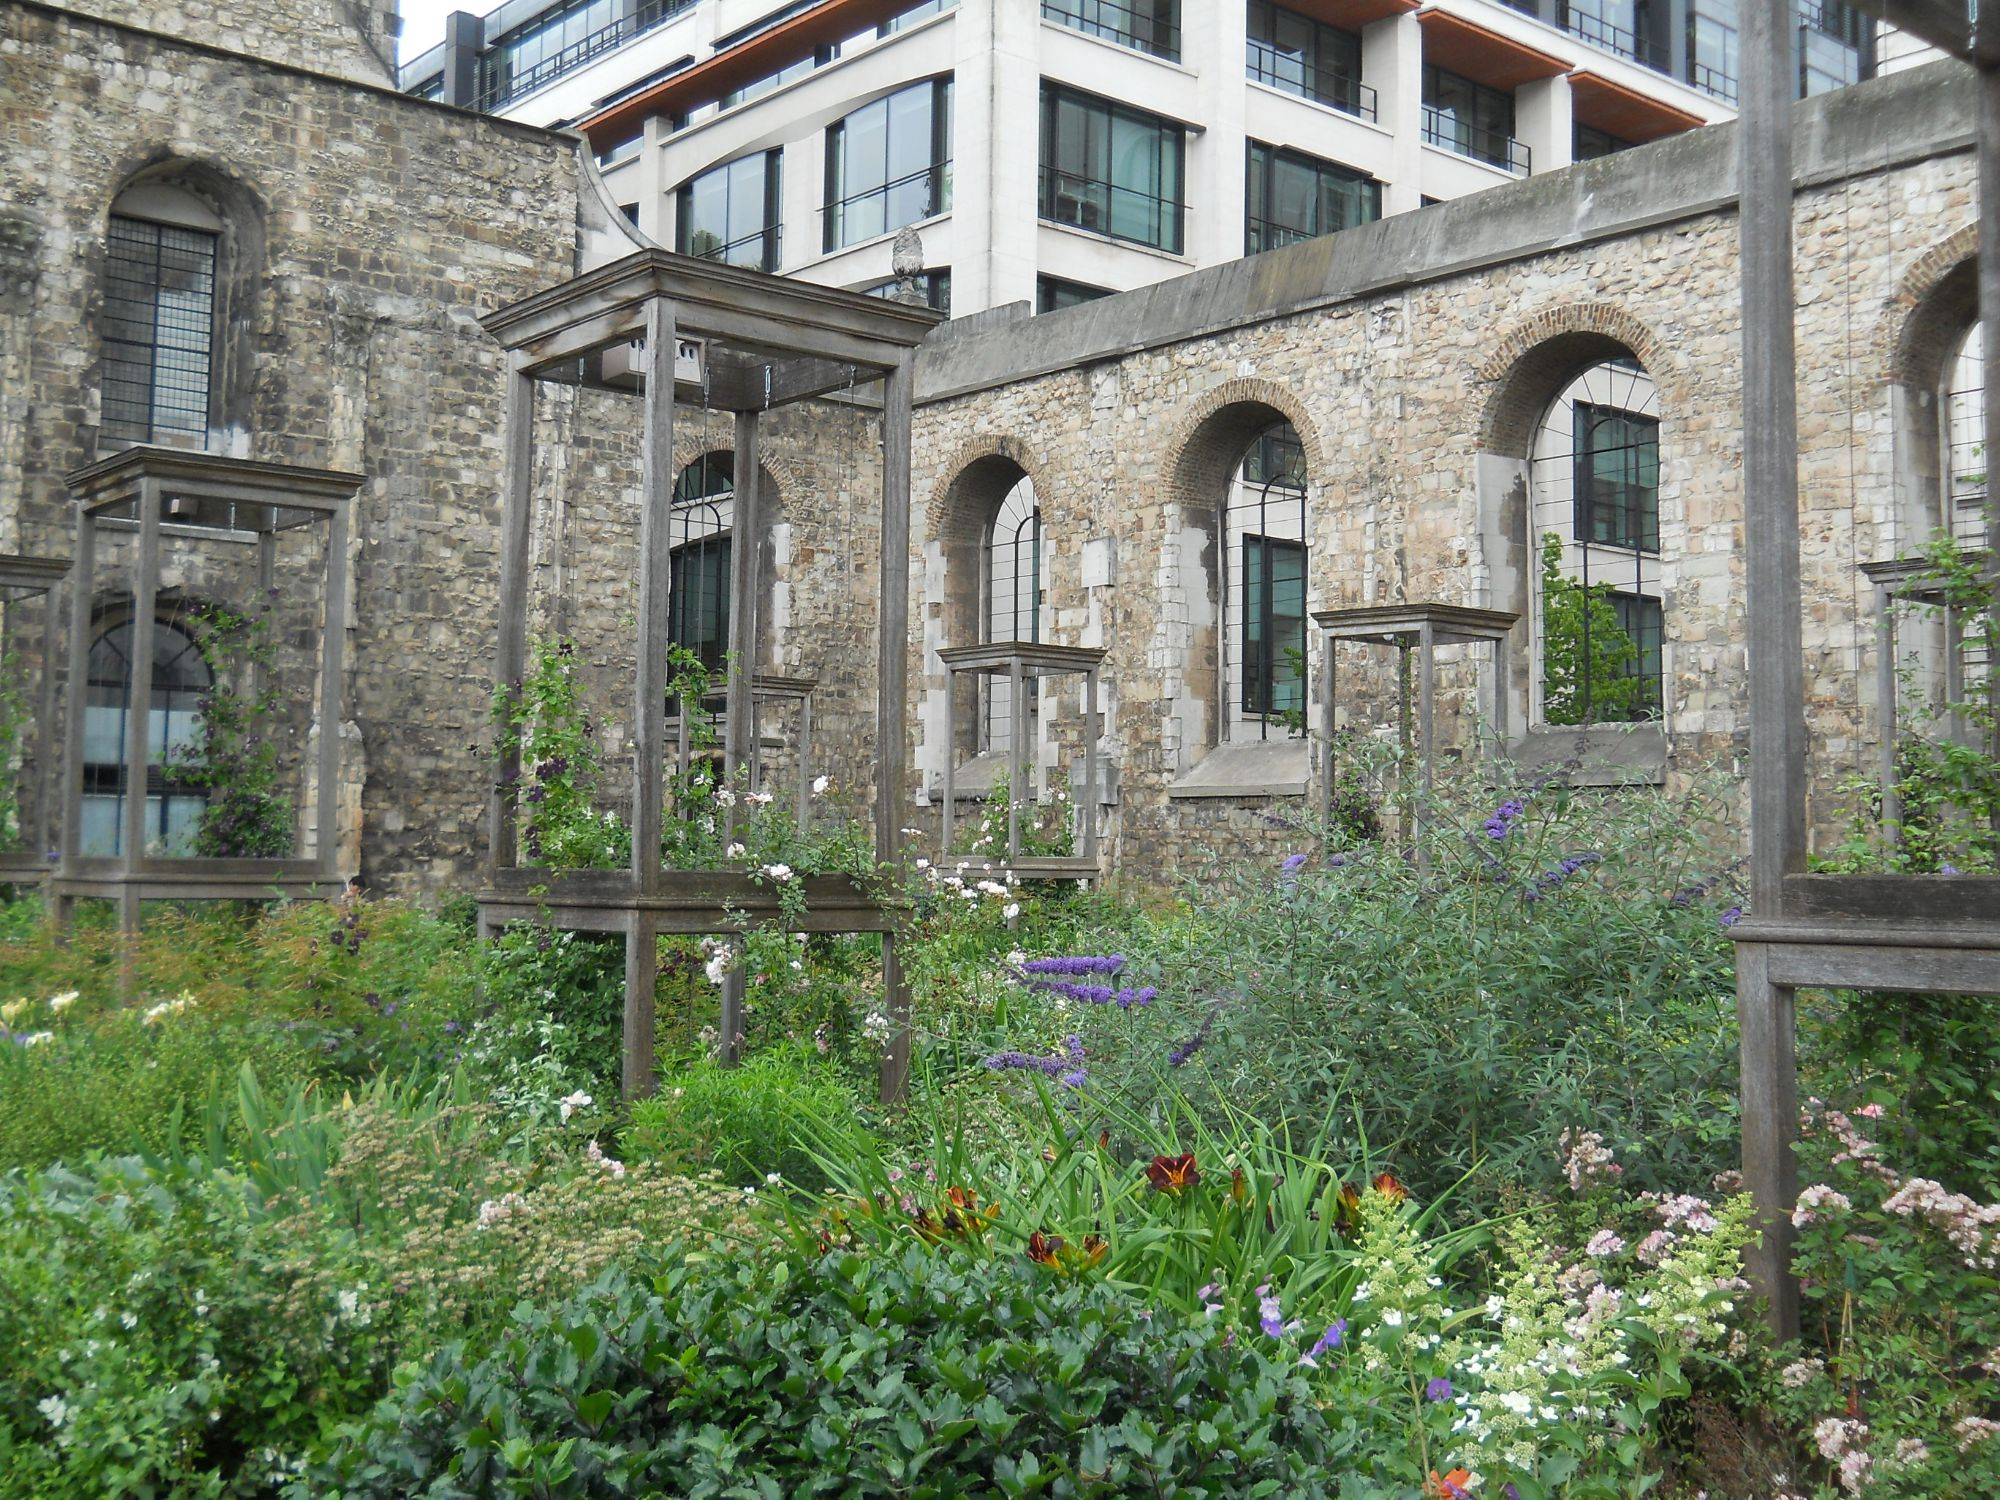 Photo of the remains of Christchurch Greyfriars. Only the tower and  walls of the former church survive and the interior has been turned into a small garden.